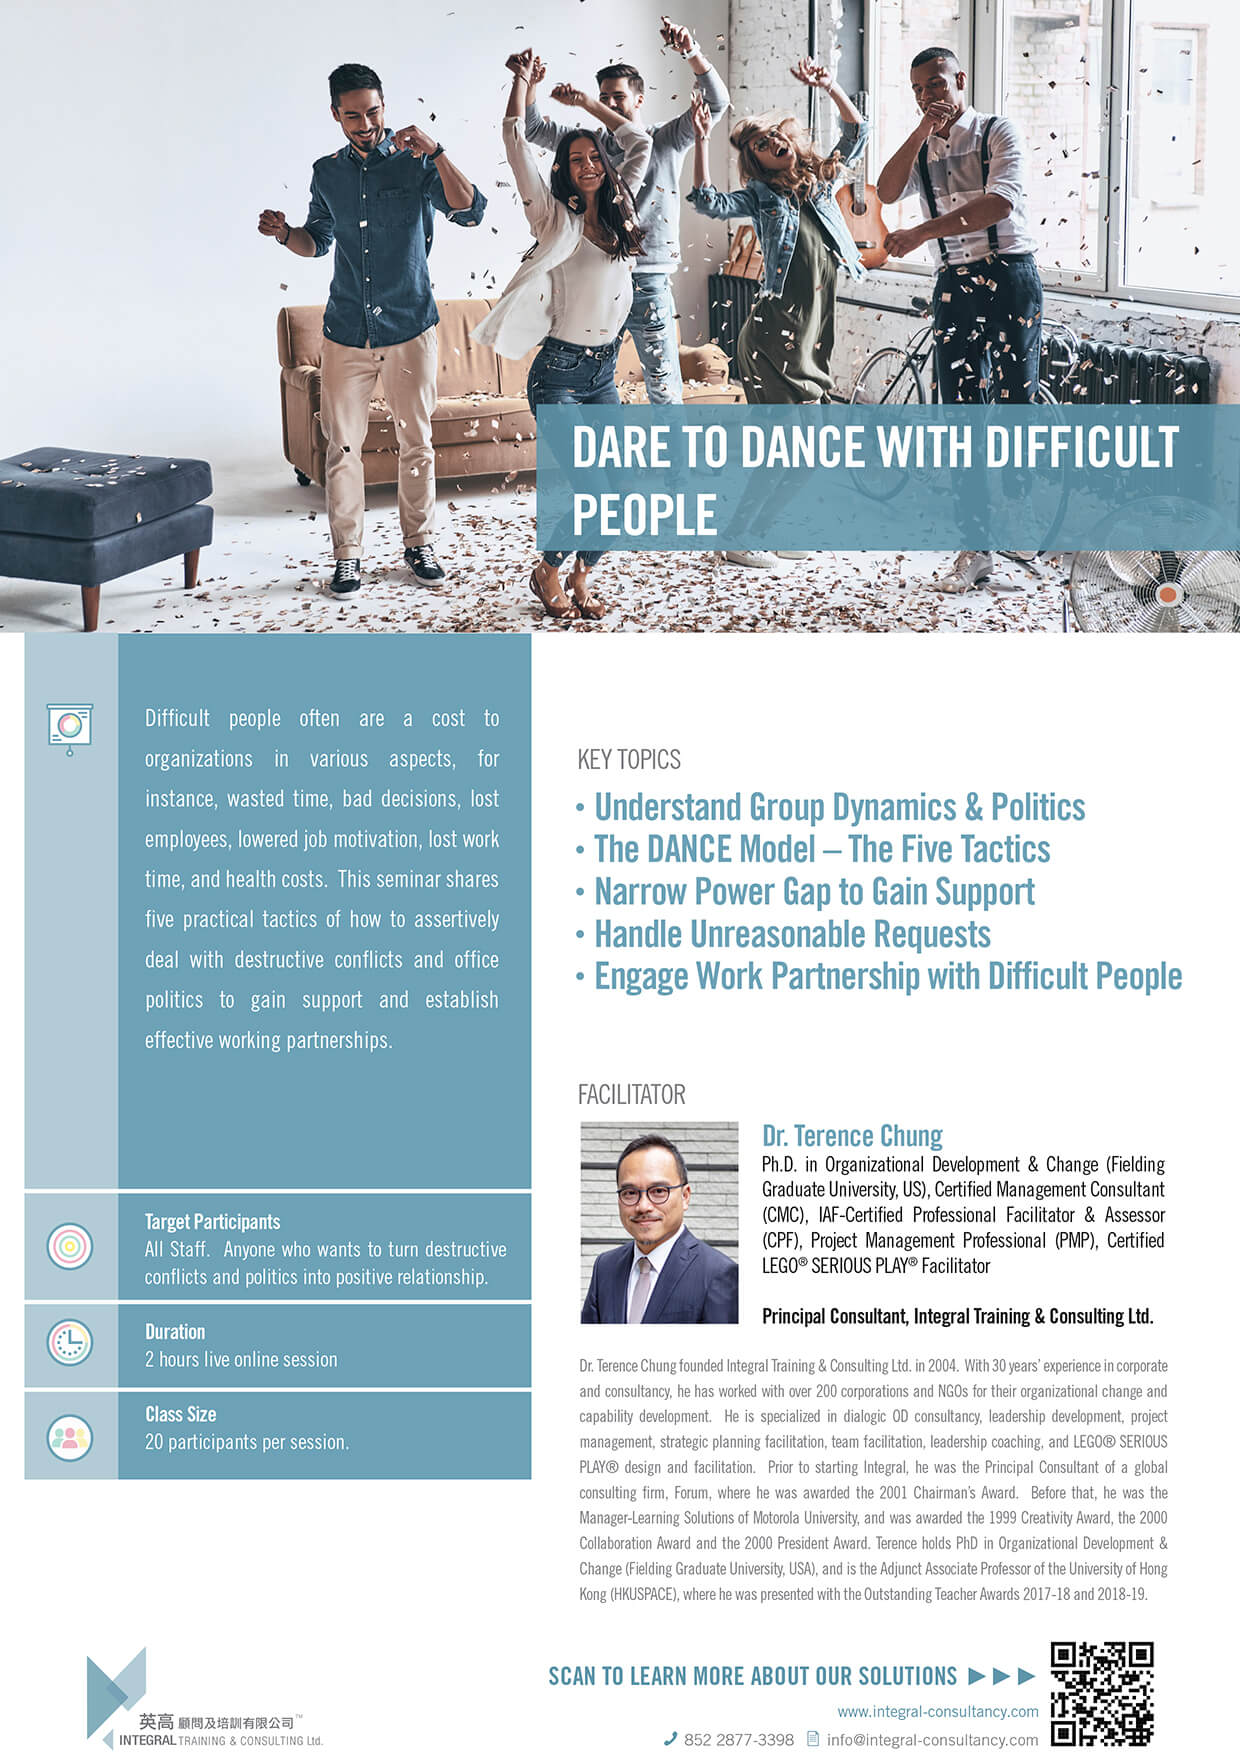 Dare to Dance with Difficult People